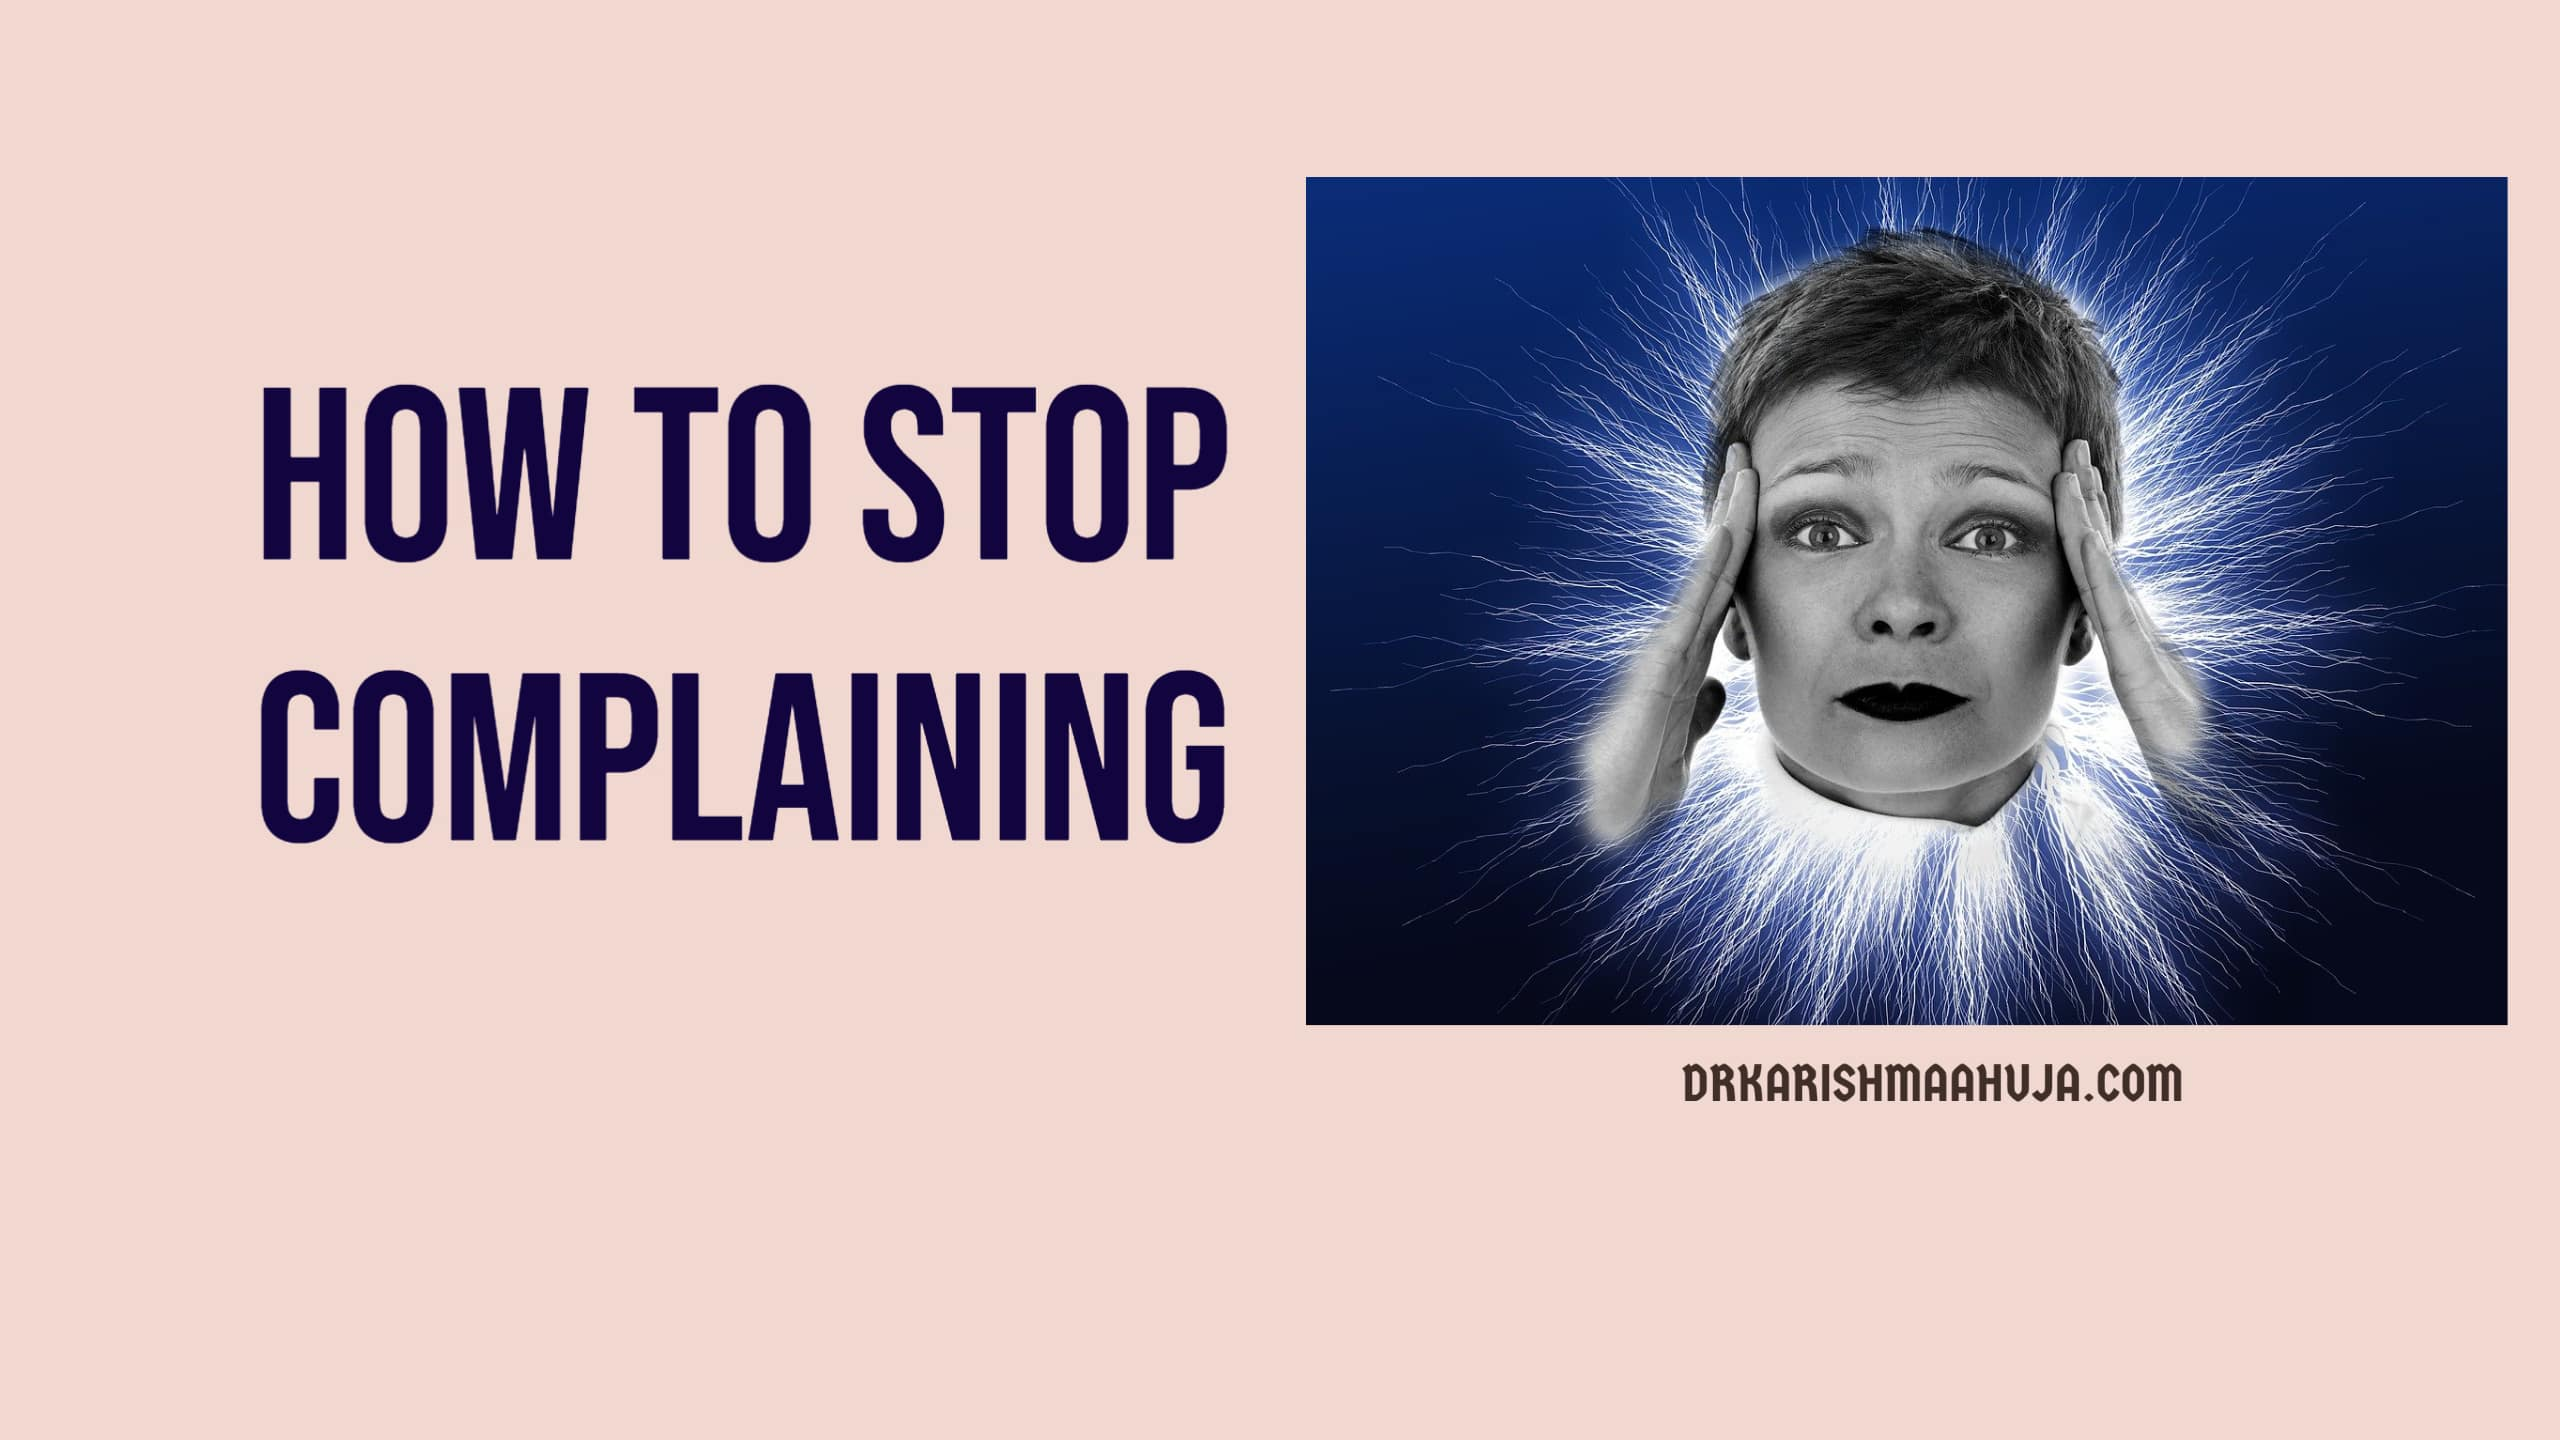 How to Stop Complaining-Blog Post by Dr Karishma Ahuja